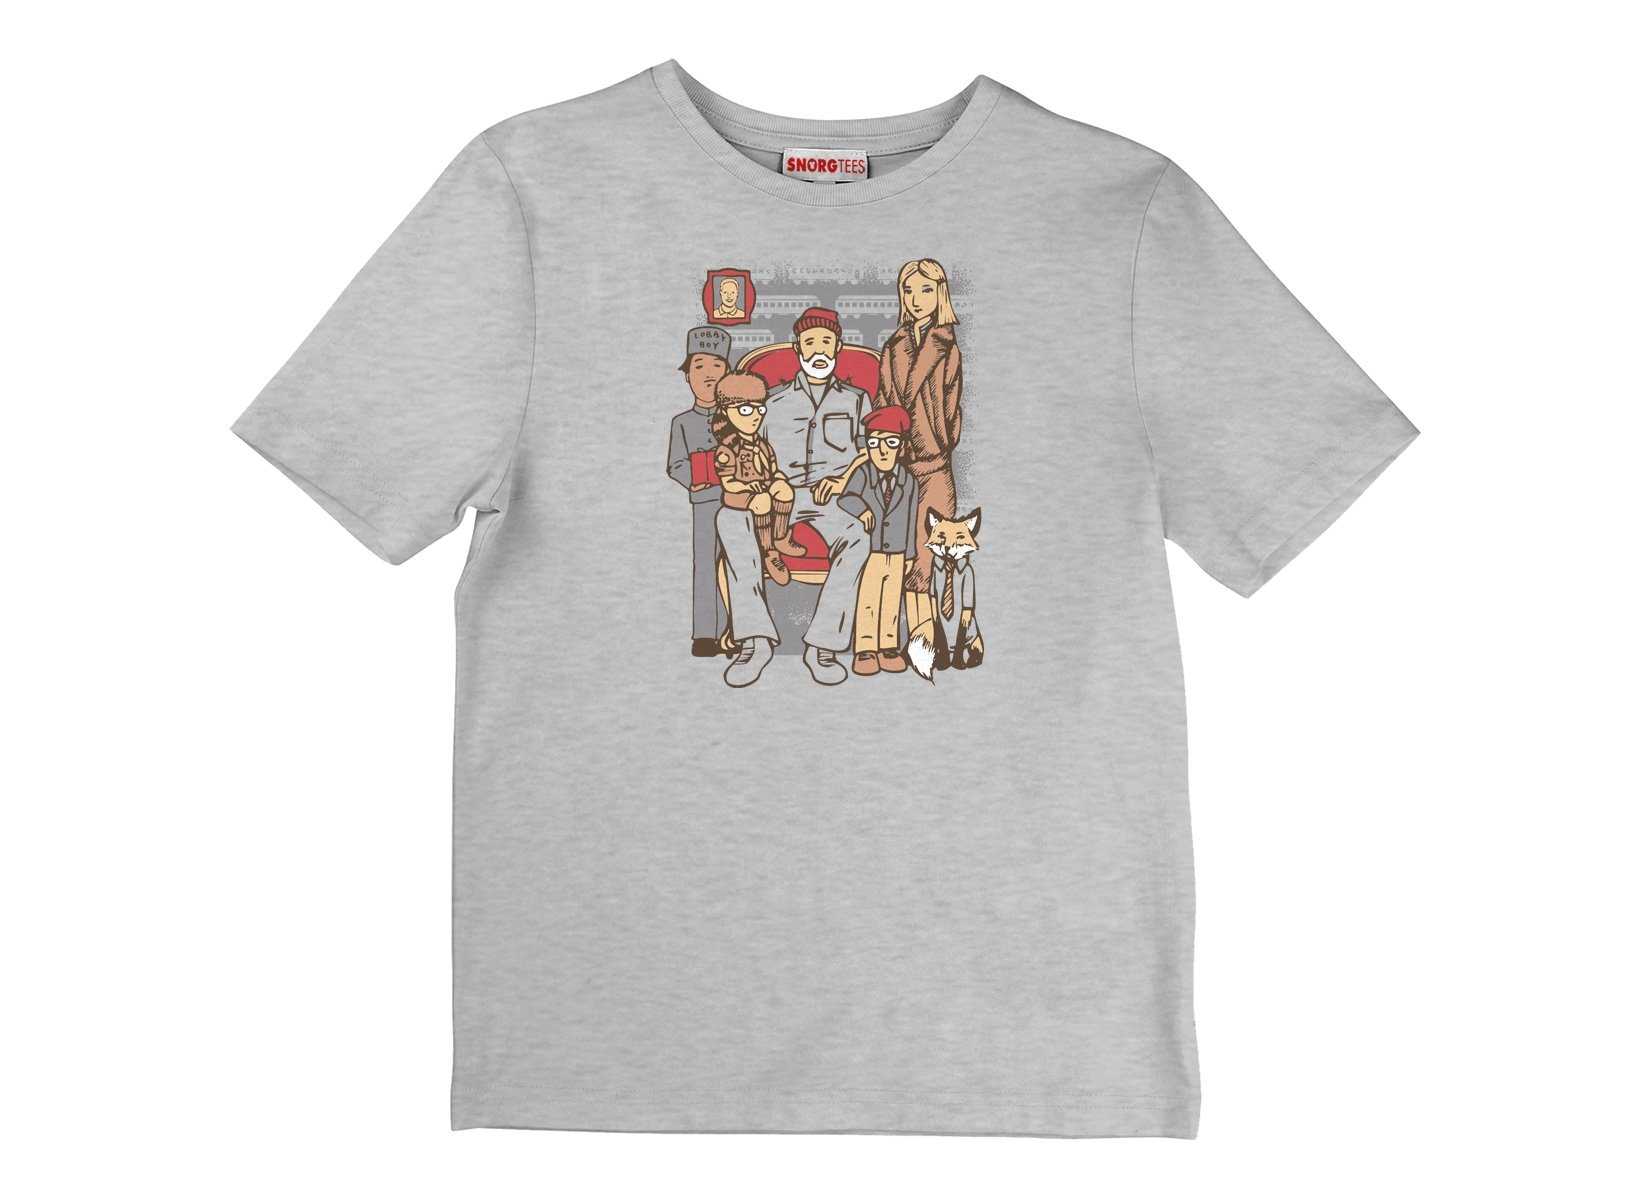 Anderson Family on Kids T-Shirt